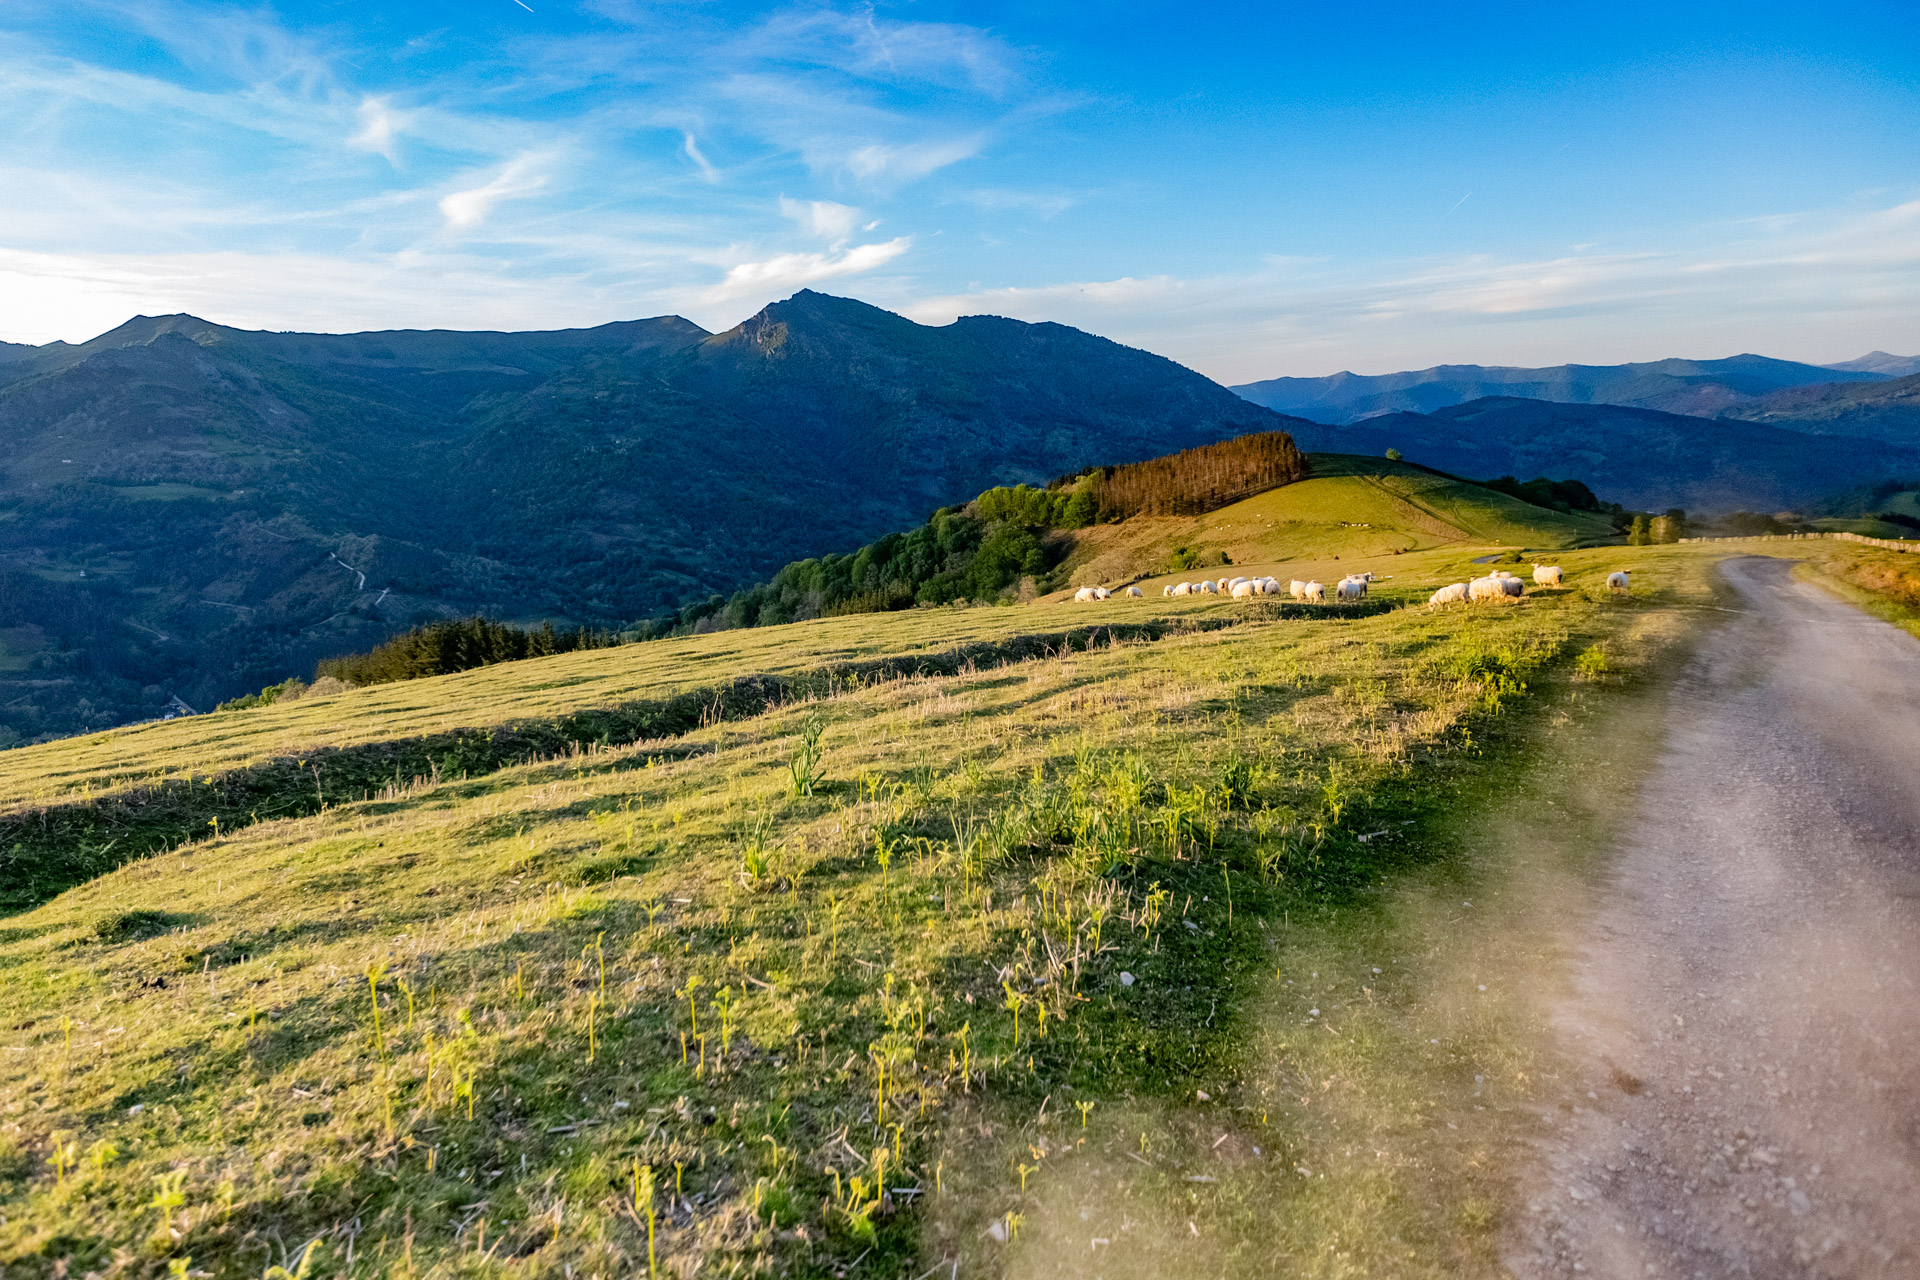 pyrenean experience - country walks in the Basque Country and Navarre north of Pamplona by Ezye Moleda